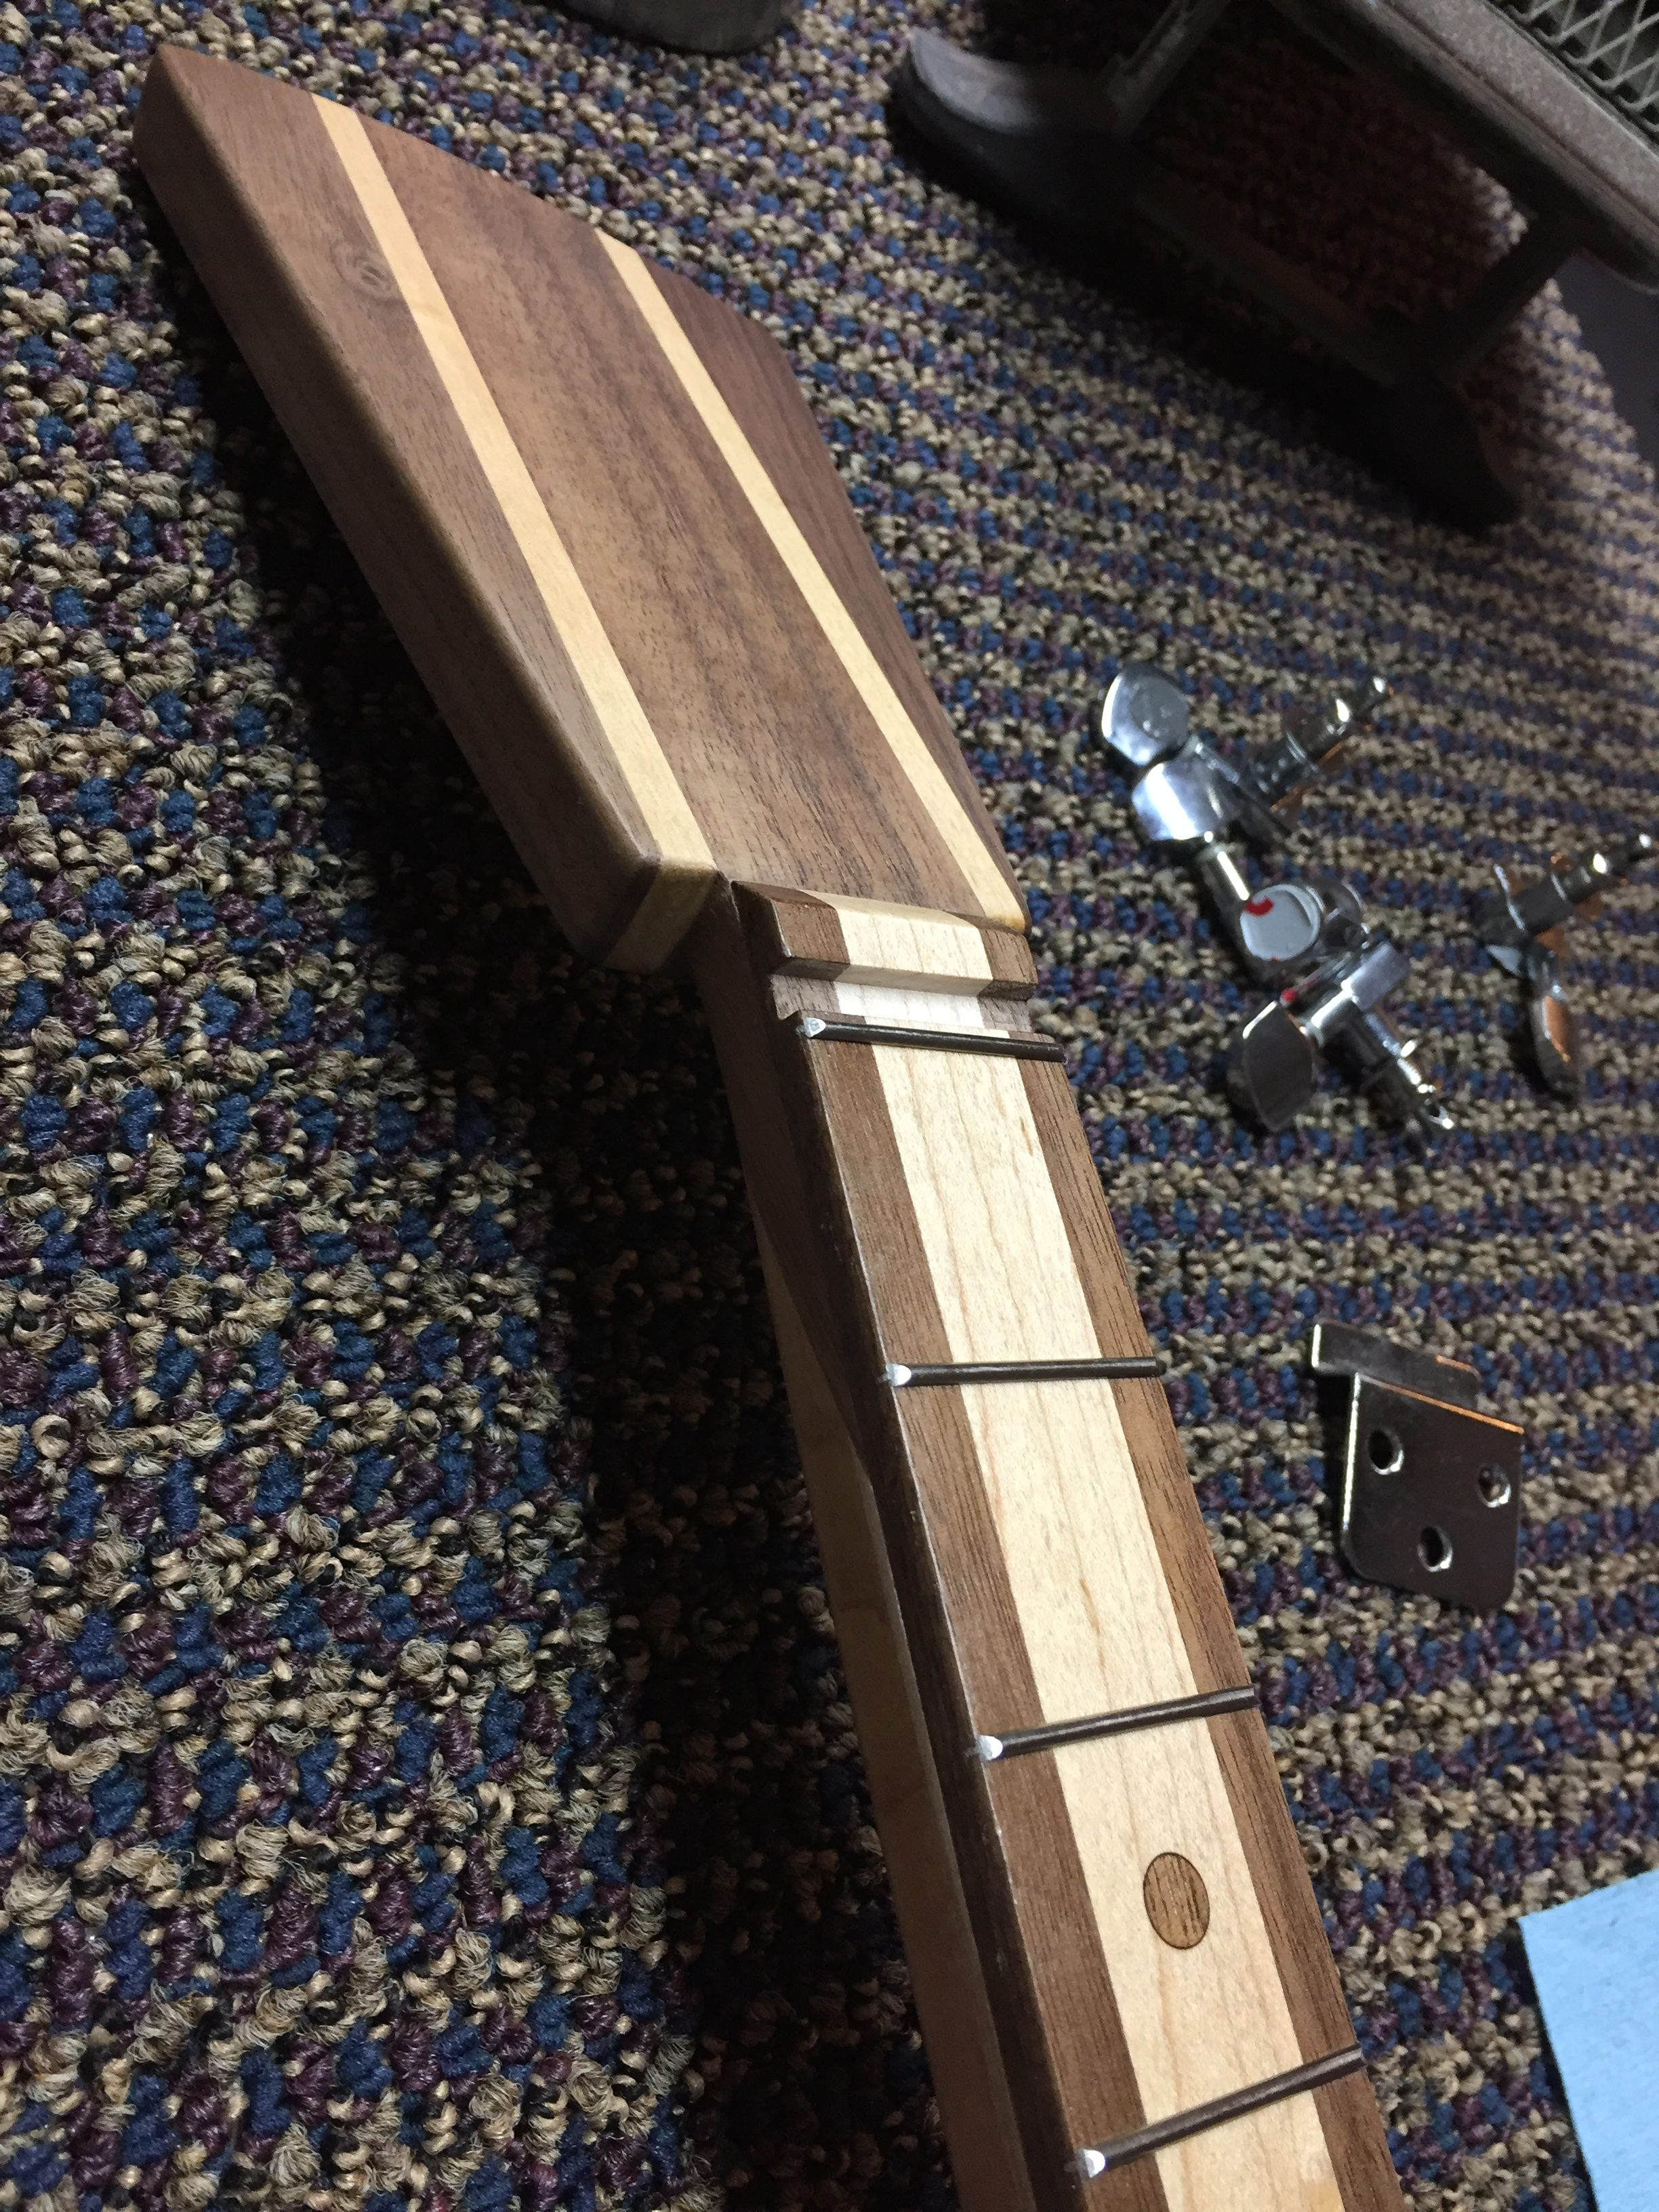 CLE Cigar Box Guitar Build - Fretting complete